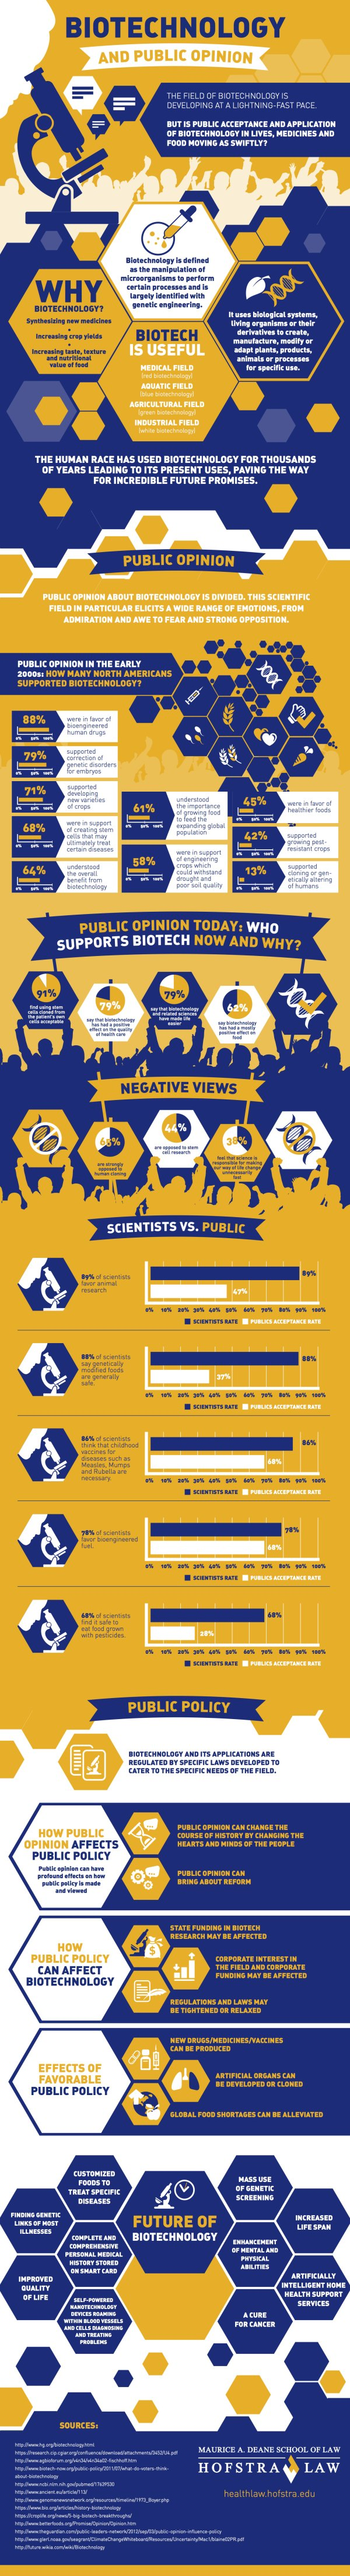 Biotechnology And Public Opinion - Online Master' In